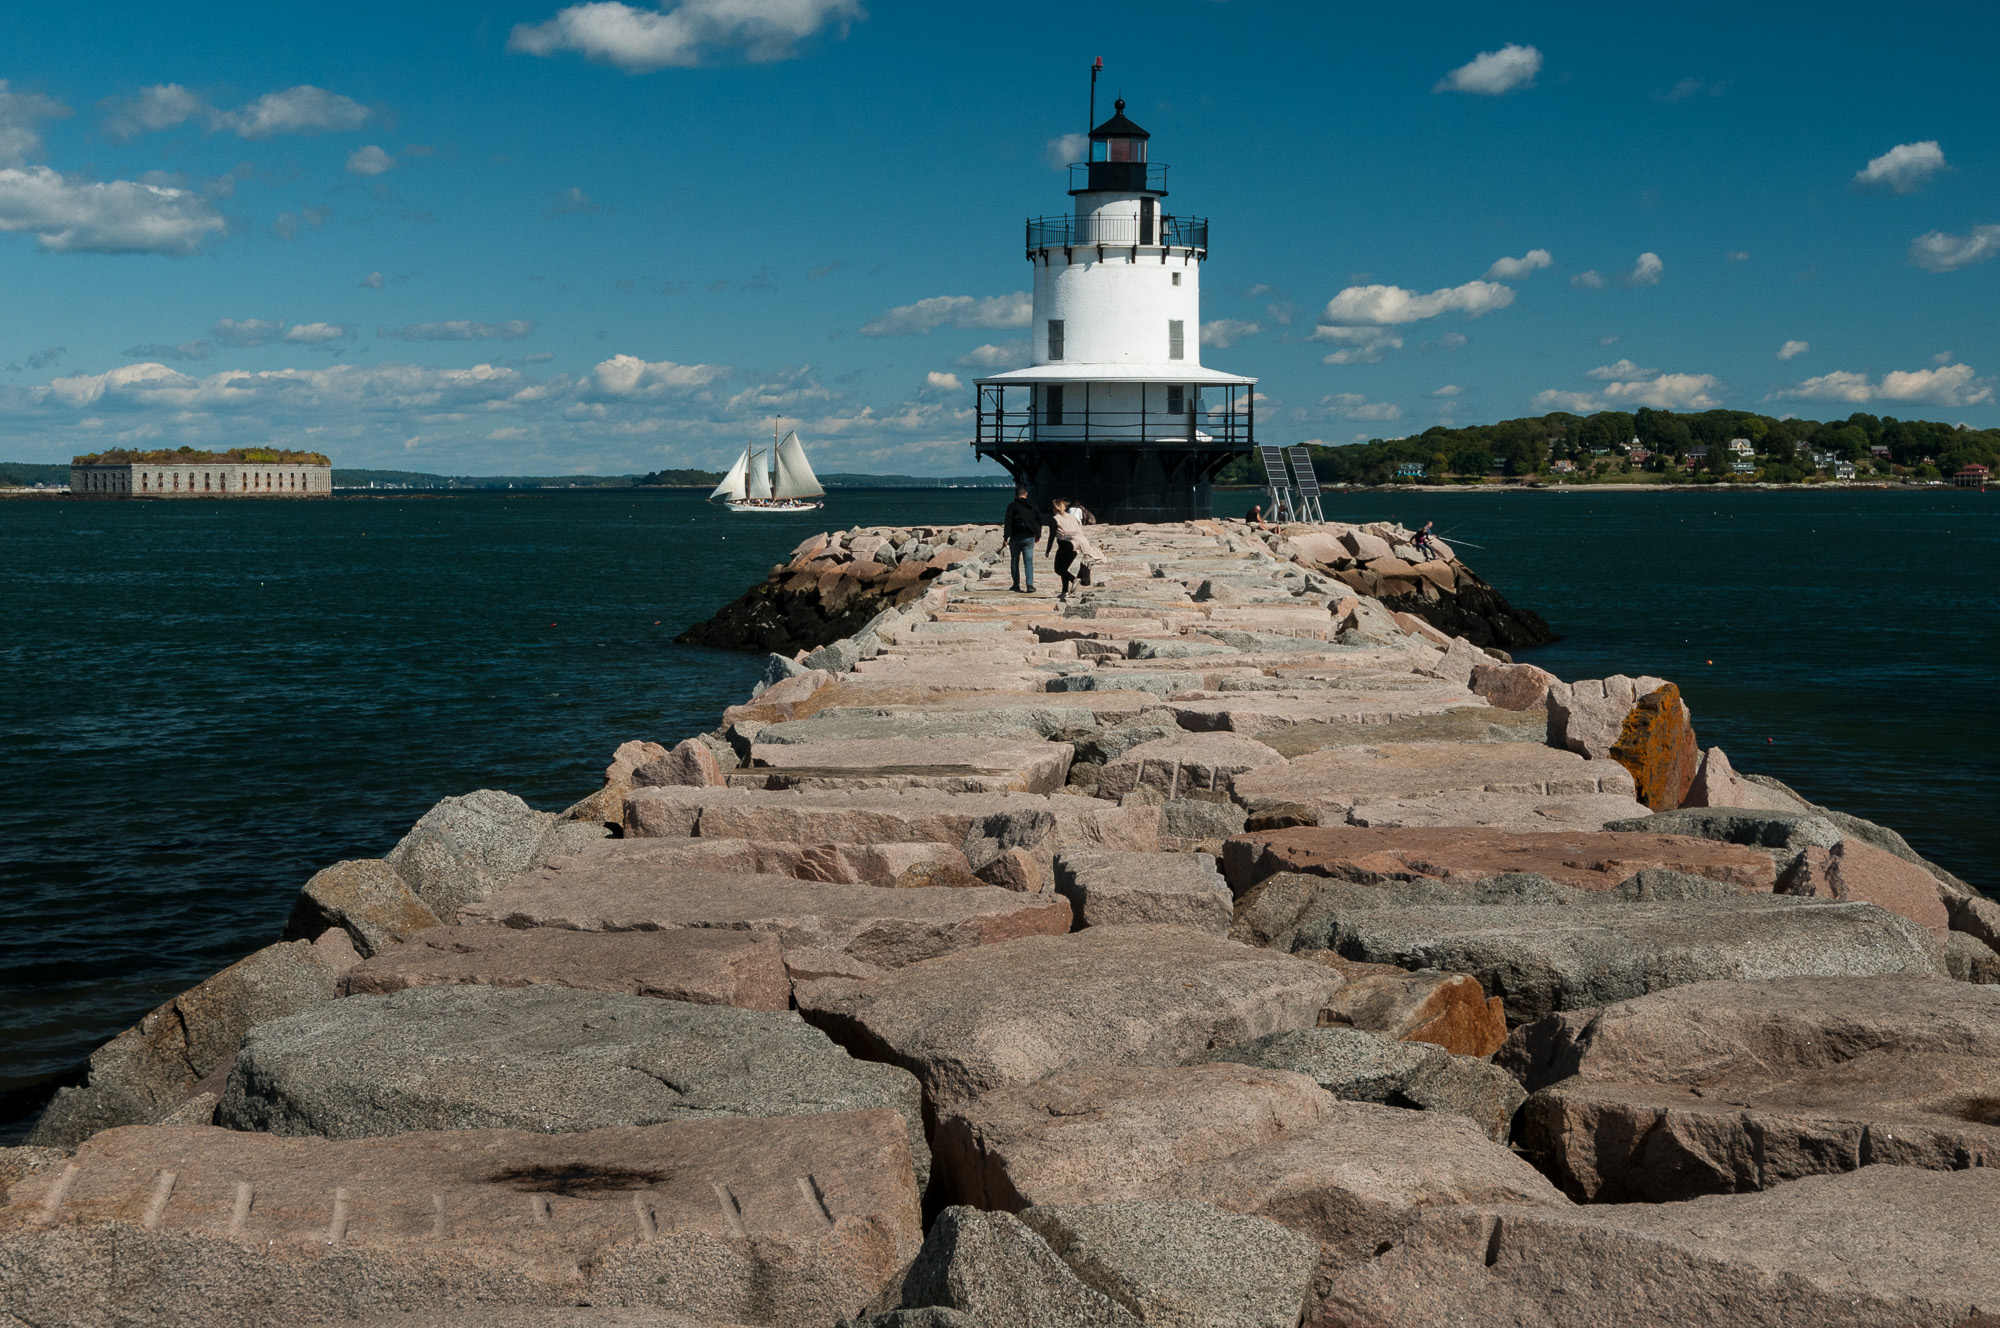 Spring Point Ledge Light, in South Portland, Maine, with view of Fort Gorges and white sailboat in the bay